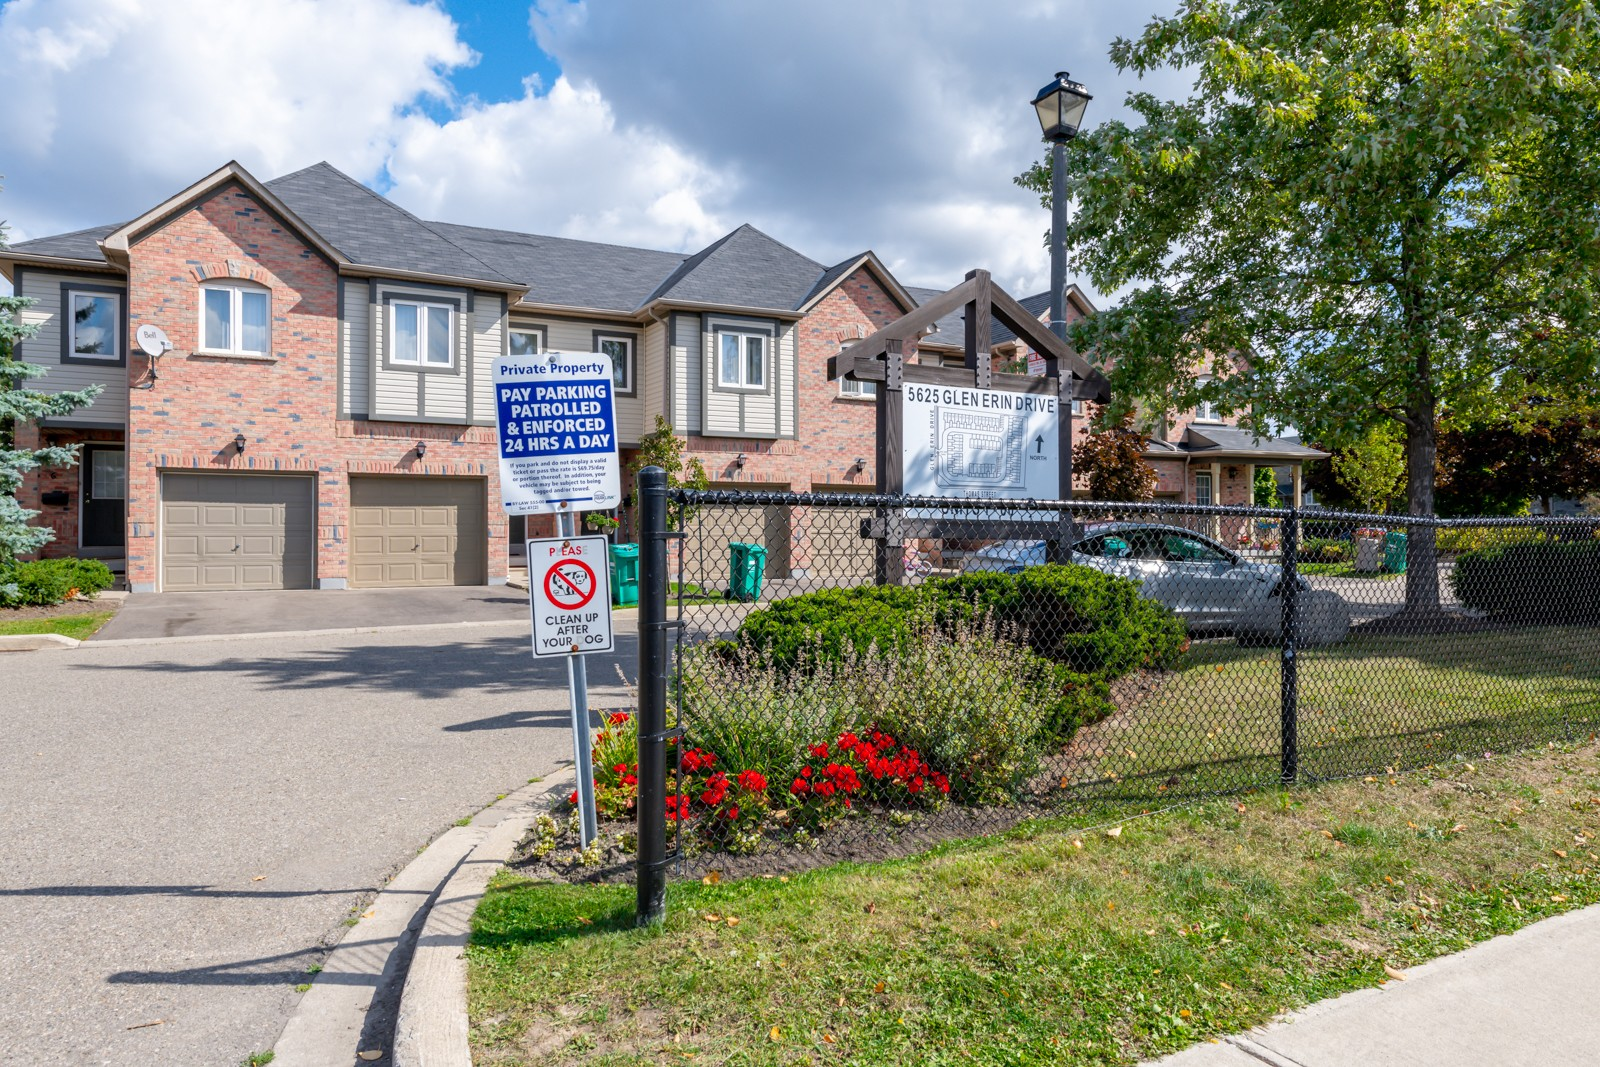 The Annex at 5625 Glen Erin Dr, Mississauga 1